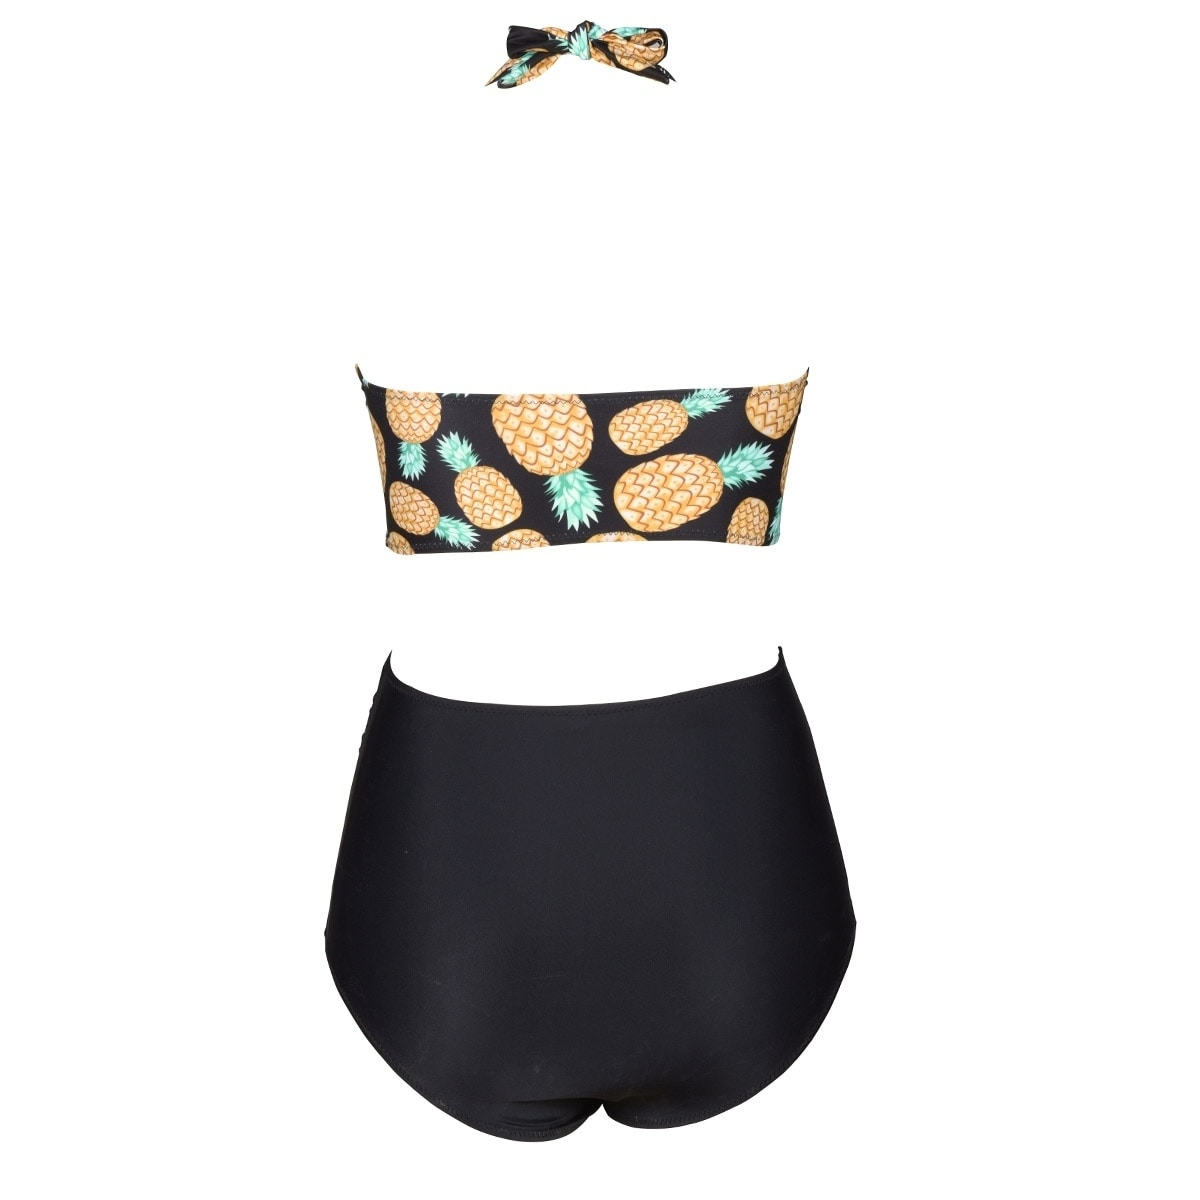 76c3b48f0a6b0 Shop Cupshe Women s Pineapple Printing High-waisted Swimsuit Padded Halter  Bikini Set - Free Shipping On Orders Over  45 - Overstock - 18842953